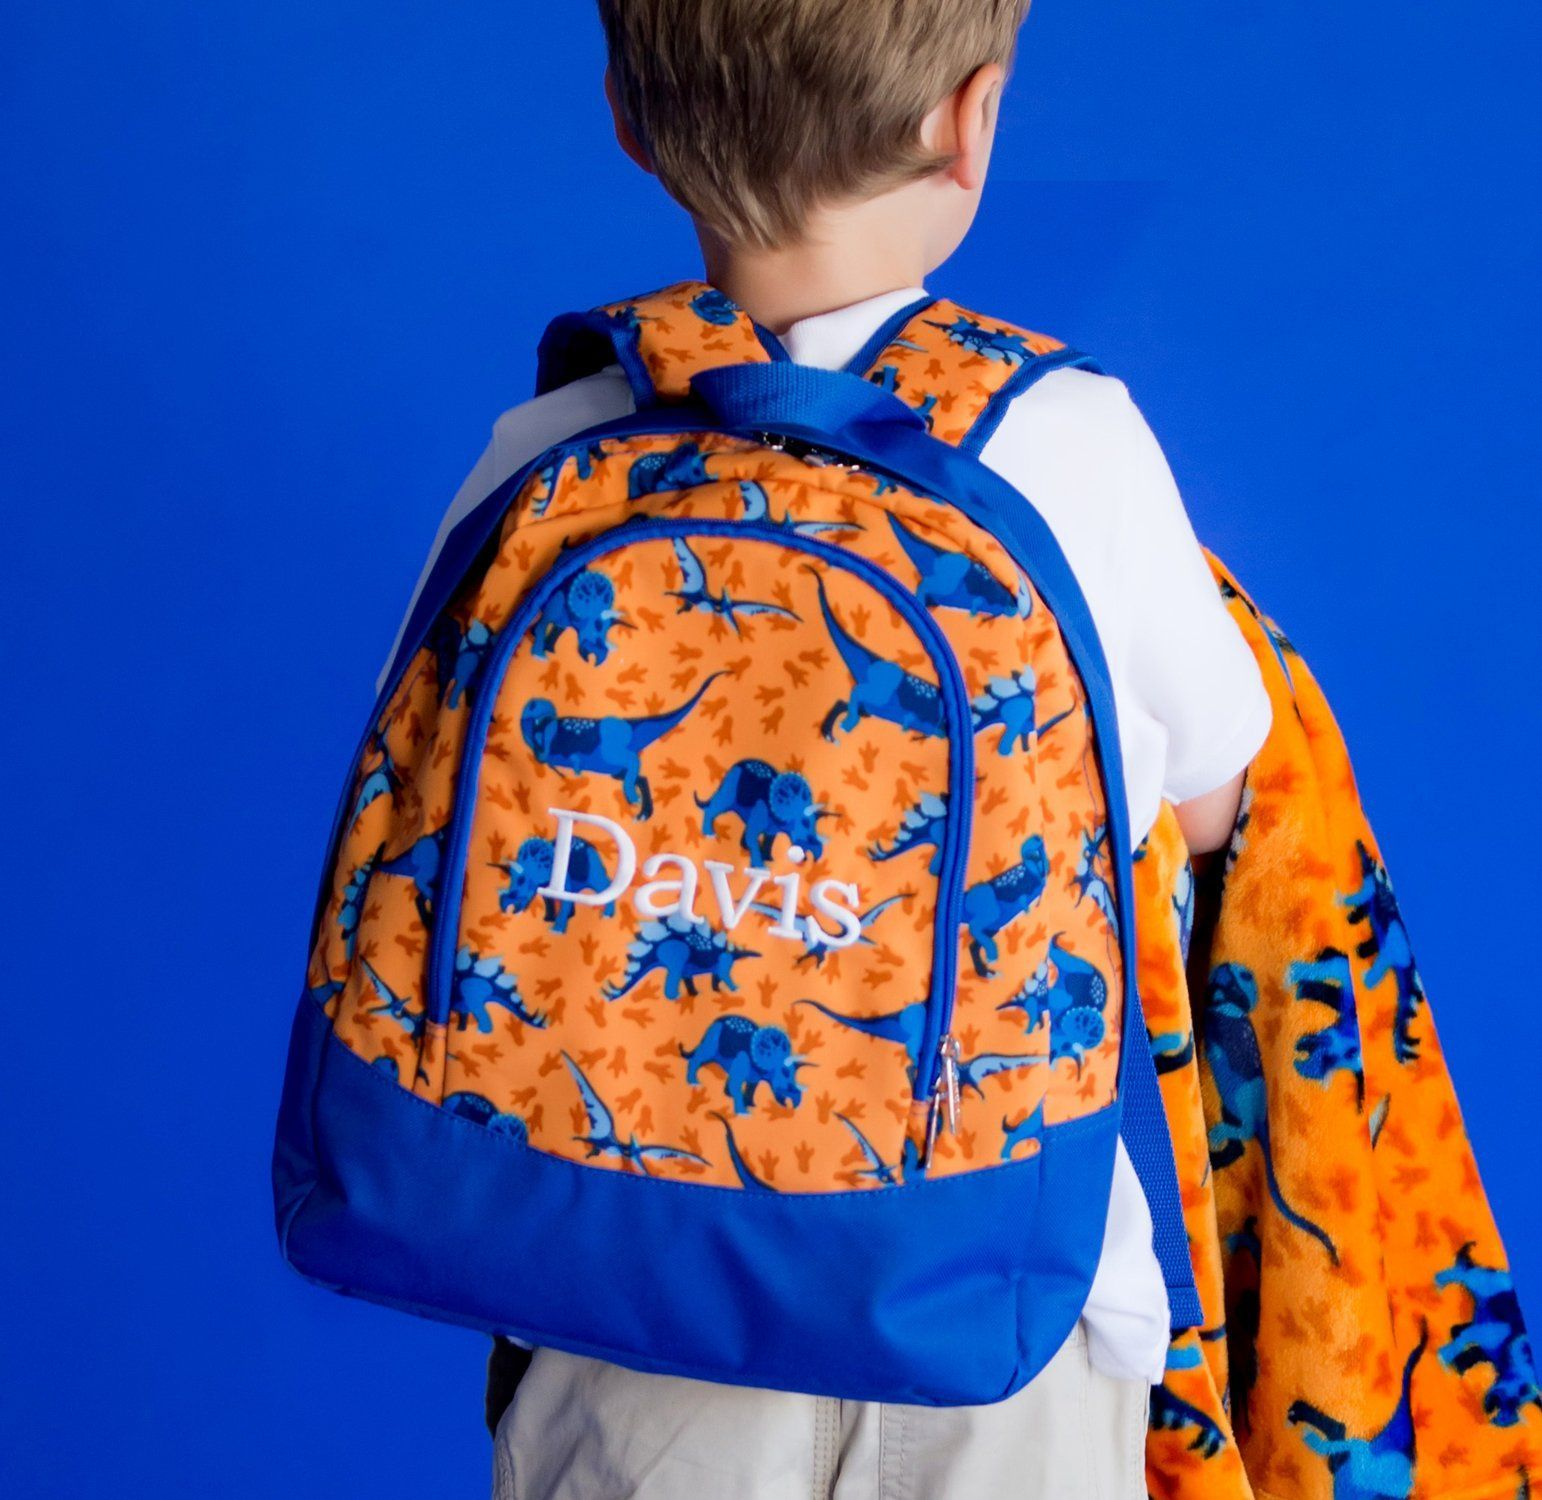 ceb3a40e8c07af6cdacfa47cc966d156 - Personalized Backpack For Kindergarten